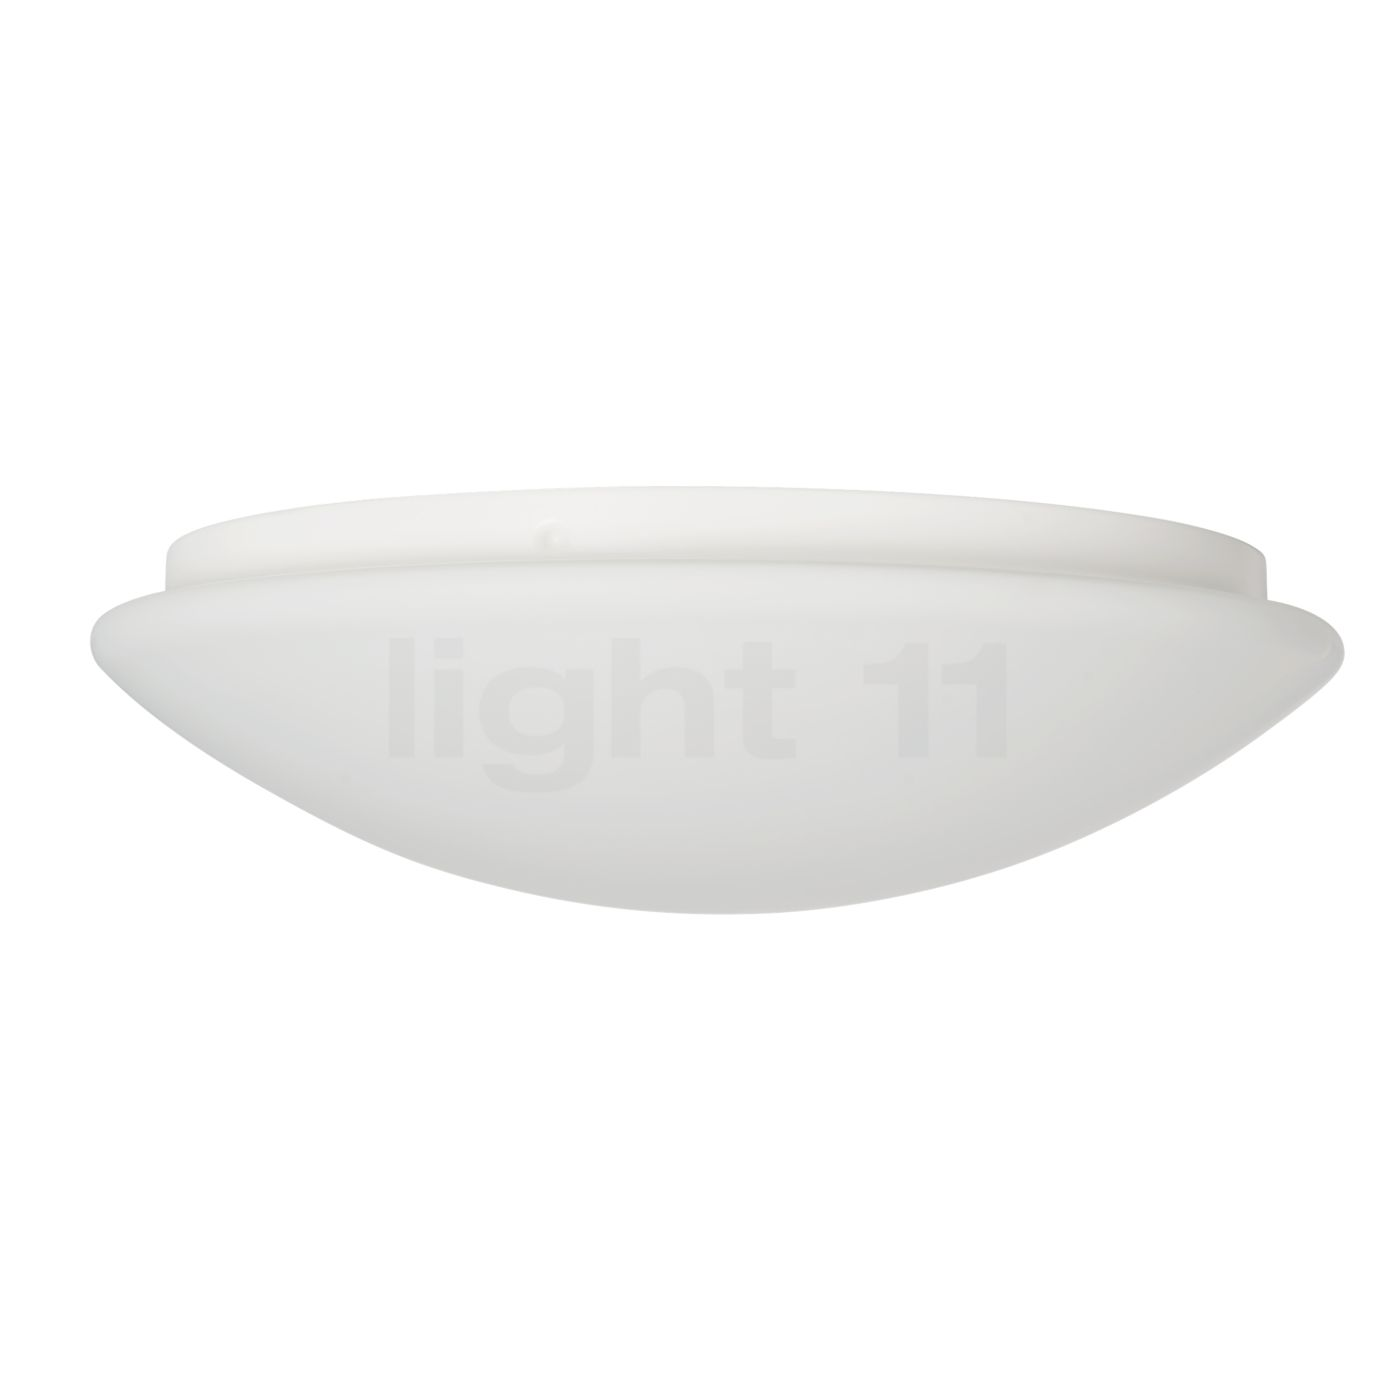 Buy bega indoor prima 12143 wallceiling light led with motion buy bega indoor prima 12143 wallceiling light led with motion detector at aloadofball Image collections